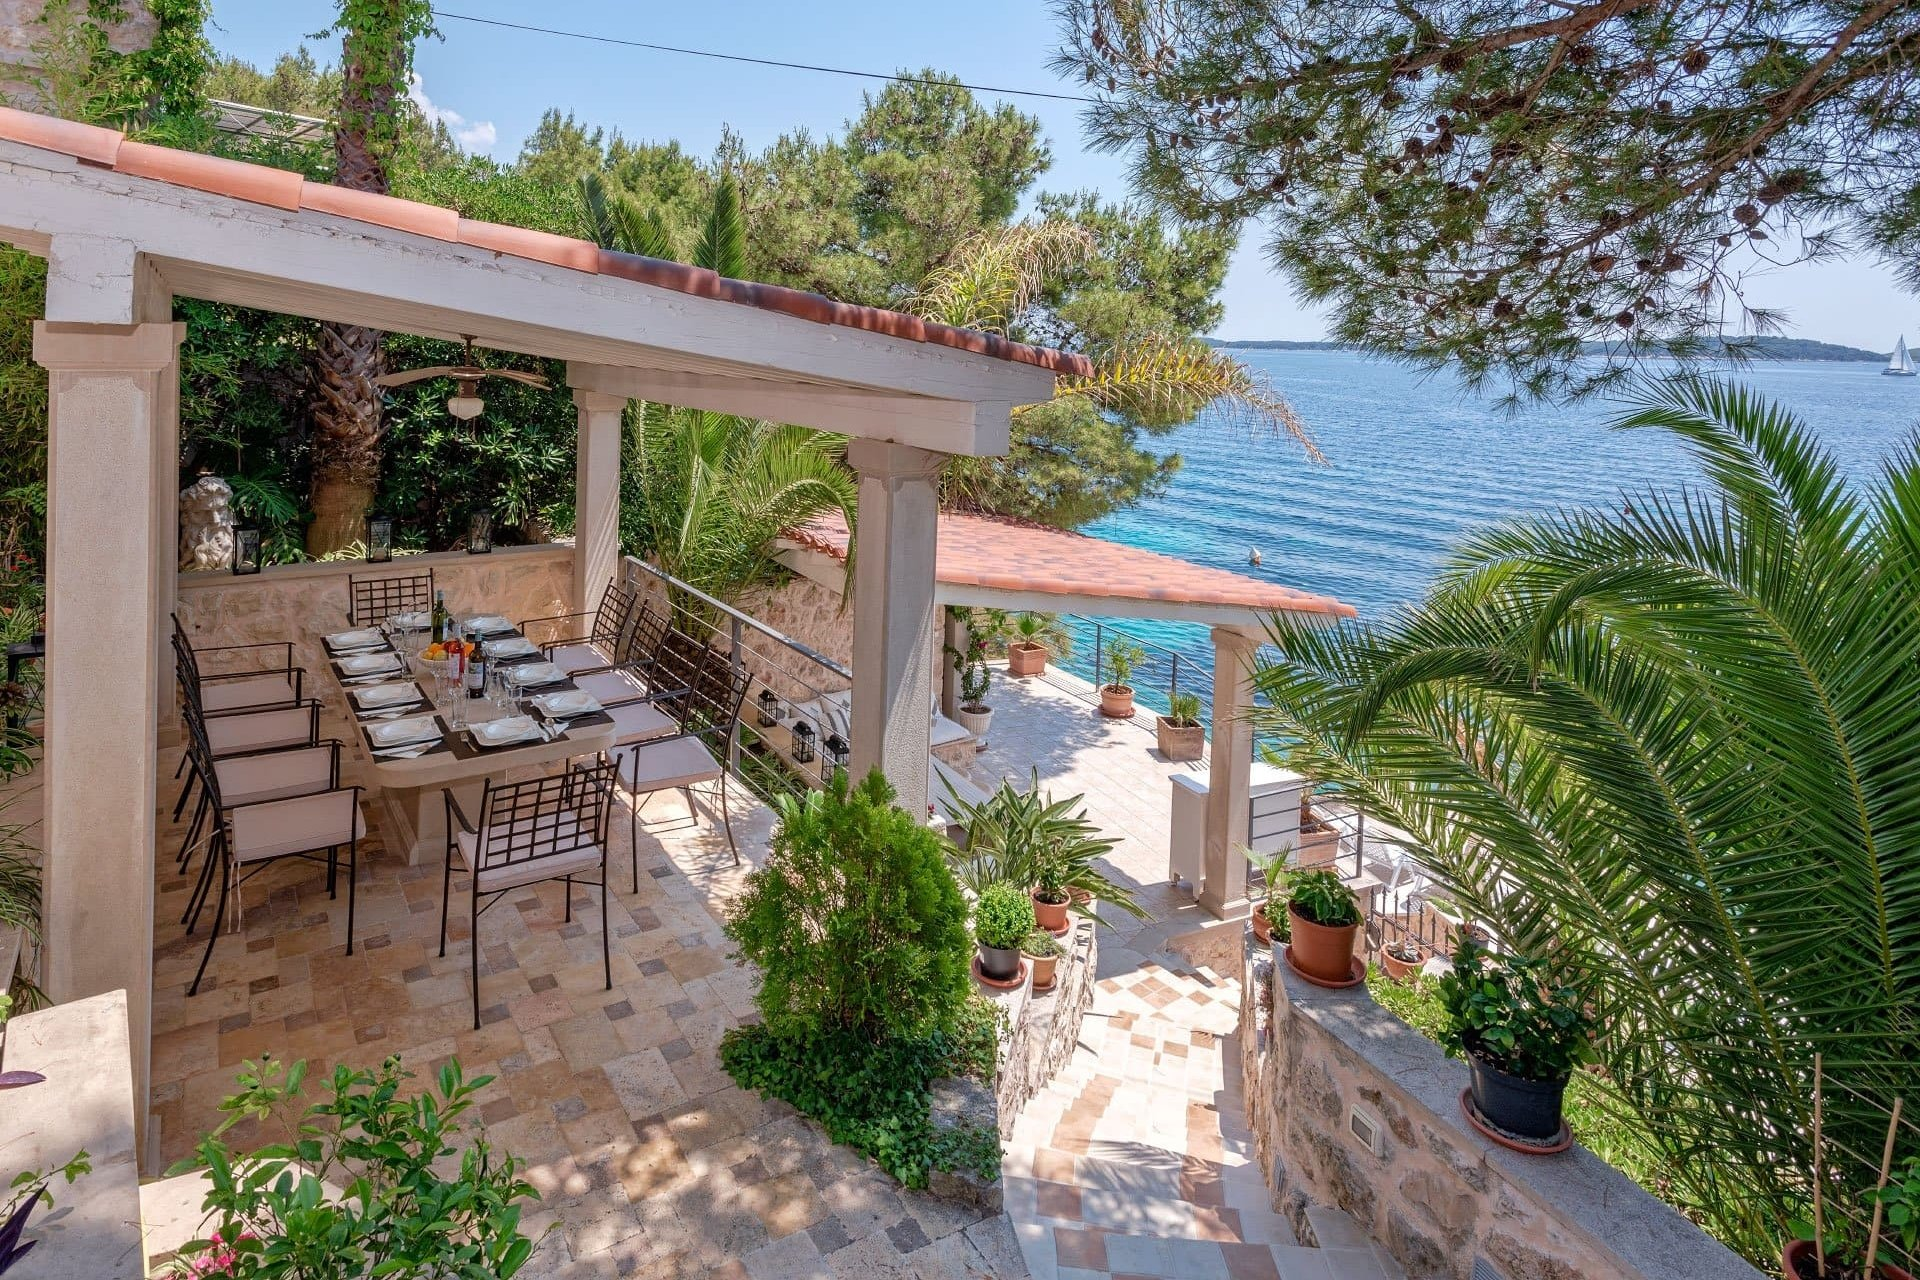 Your vacation starts here... <br>Over 600 vacation rentals in Croatia, Italy and Montenegro.